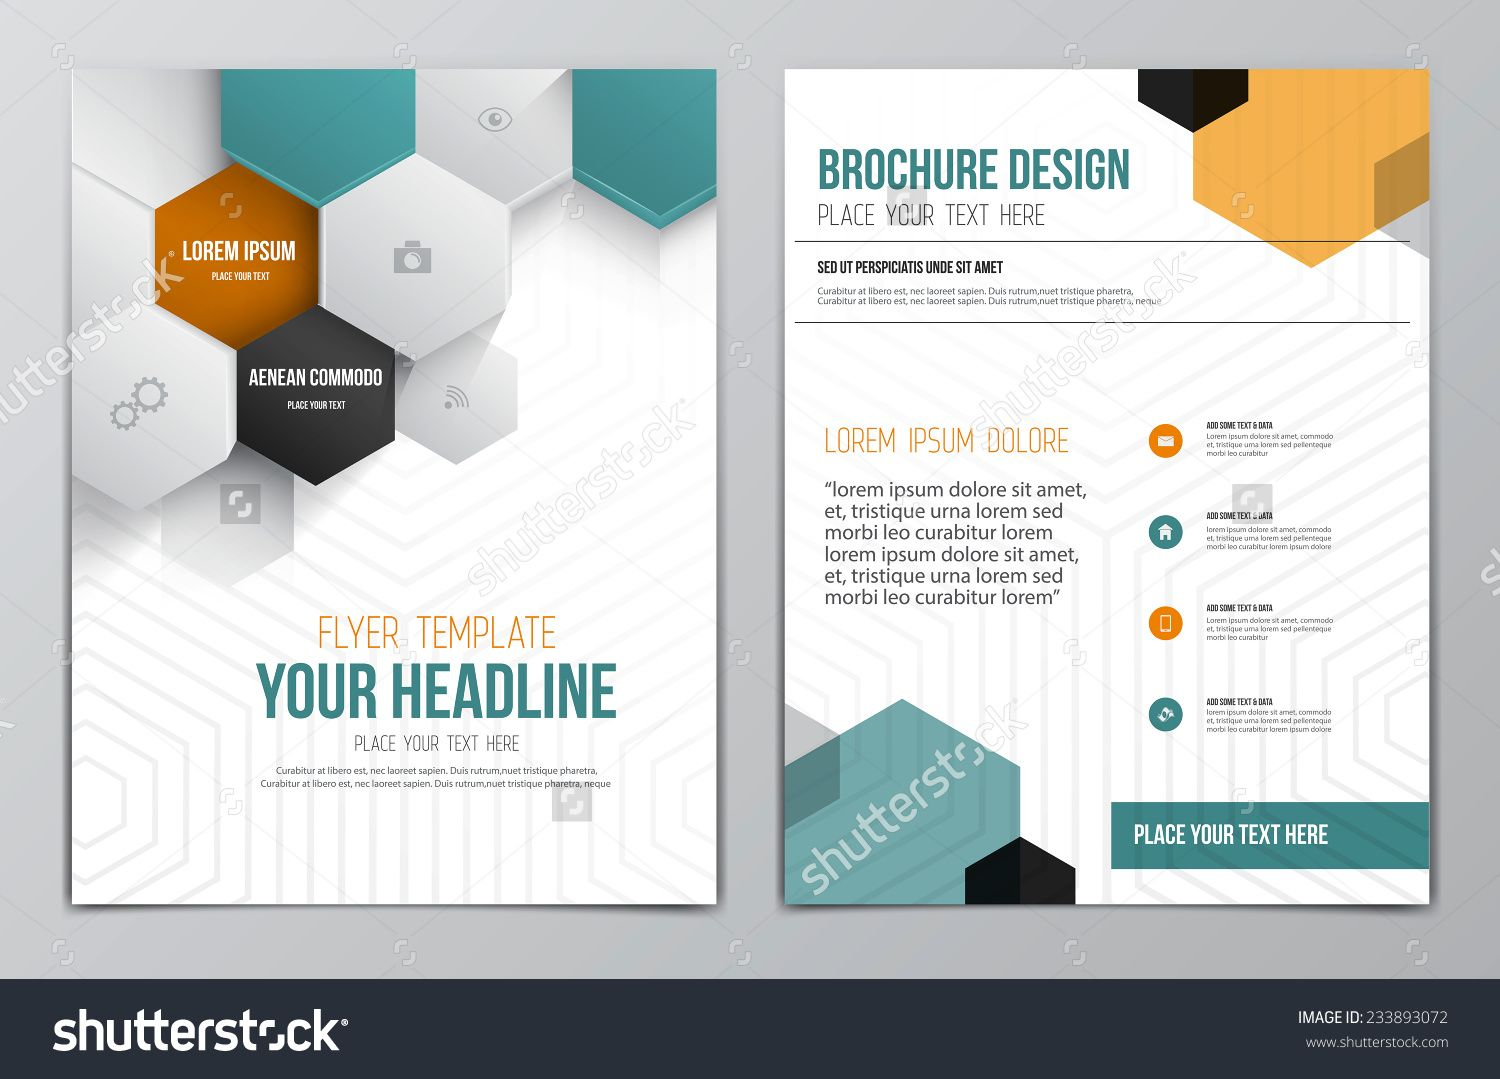 Brochure Design Template Geometric Shapes Abstract Modern - Brochures design templates